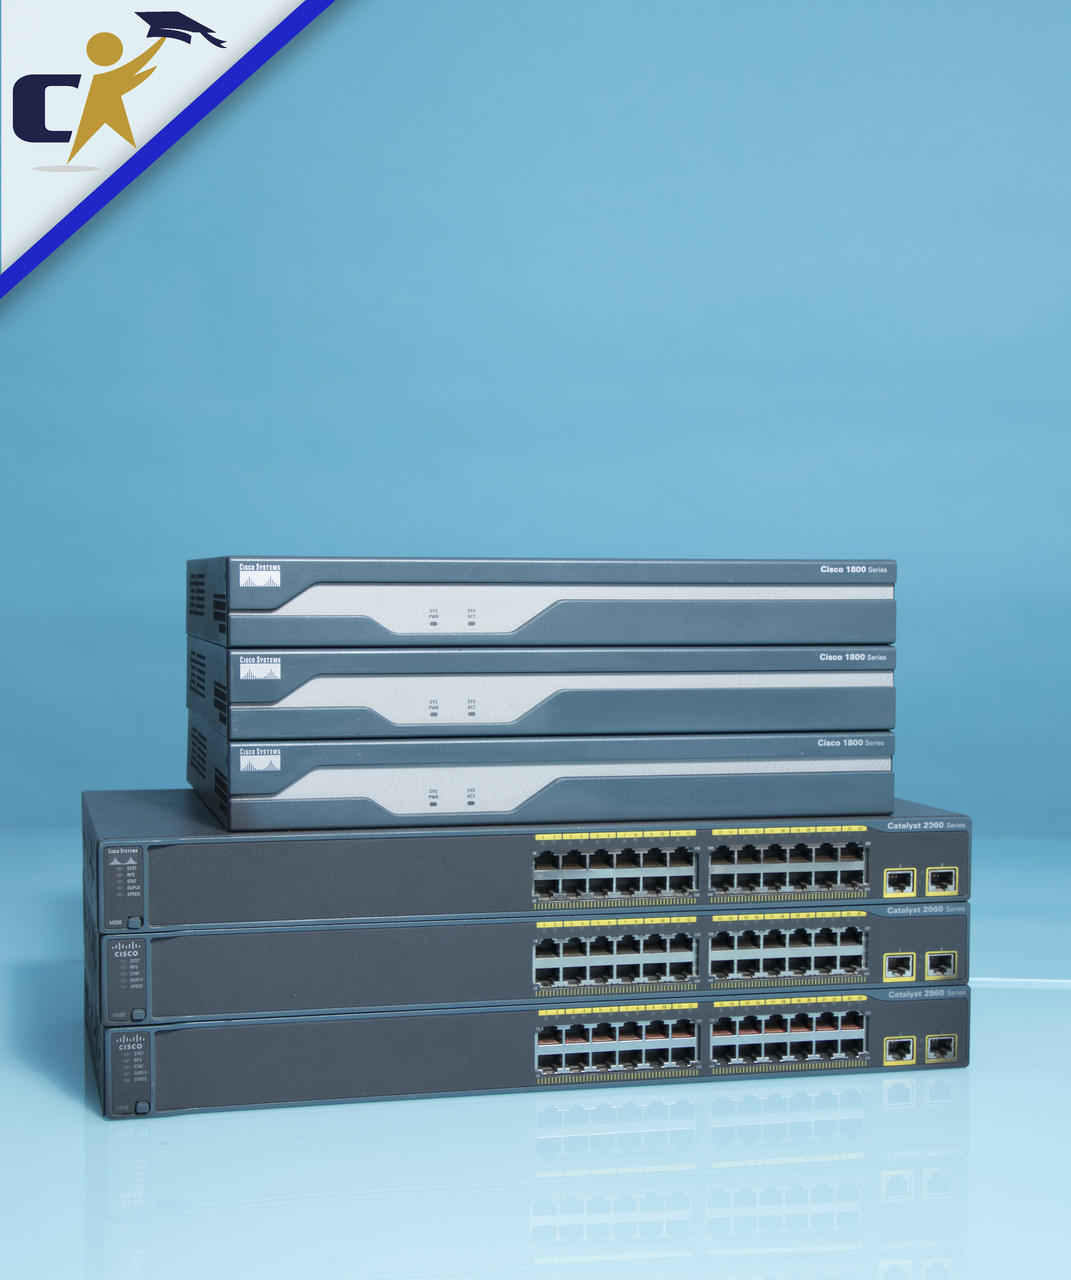 Ccna Security Standard Combo Kit Certificationkits Cisco 2960 S Diagram And Catalyst Switches Comparison Image 1